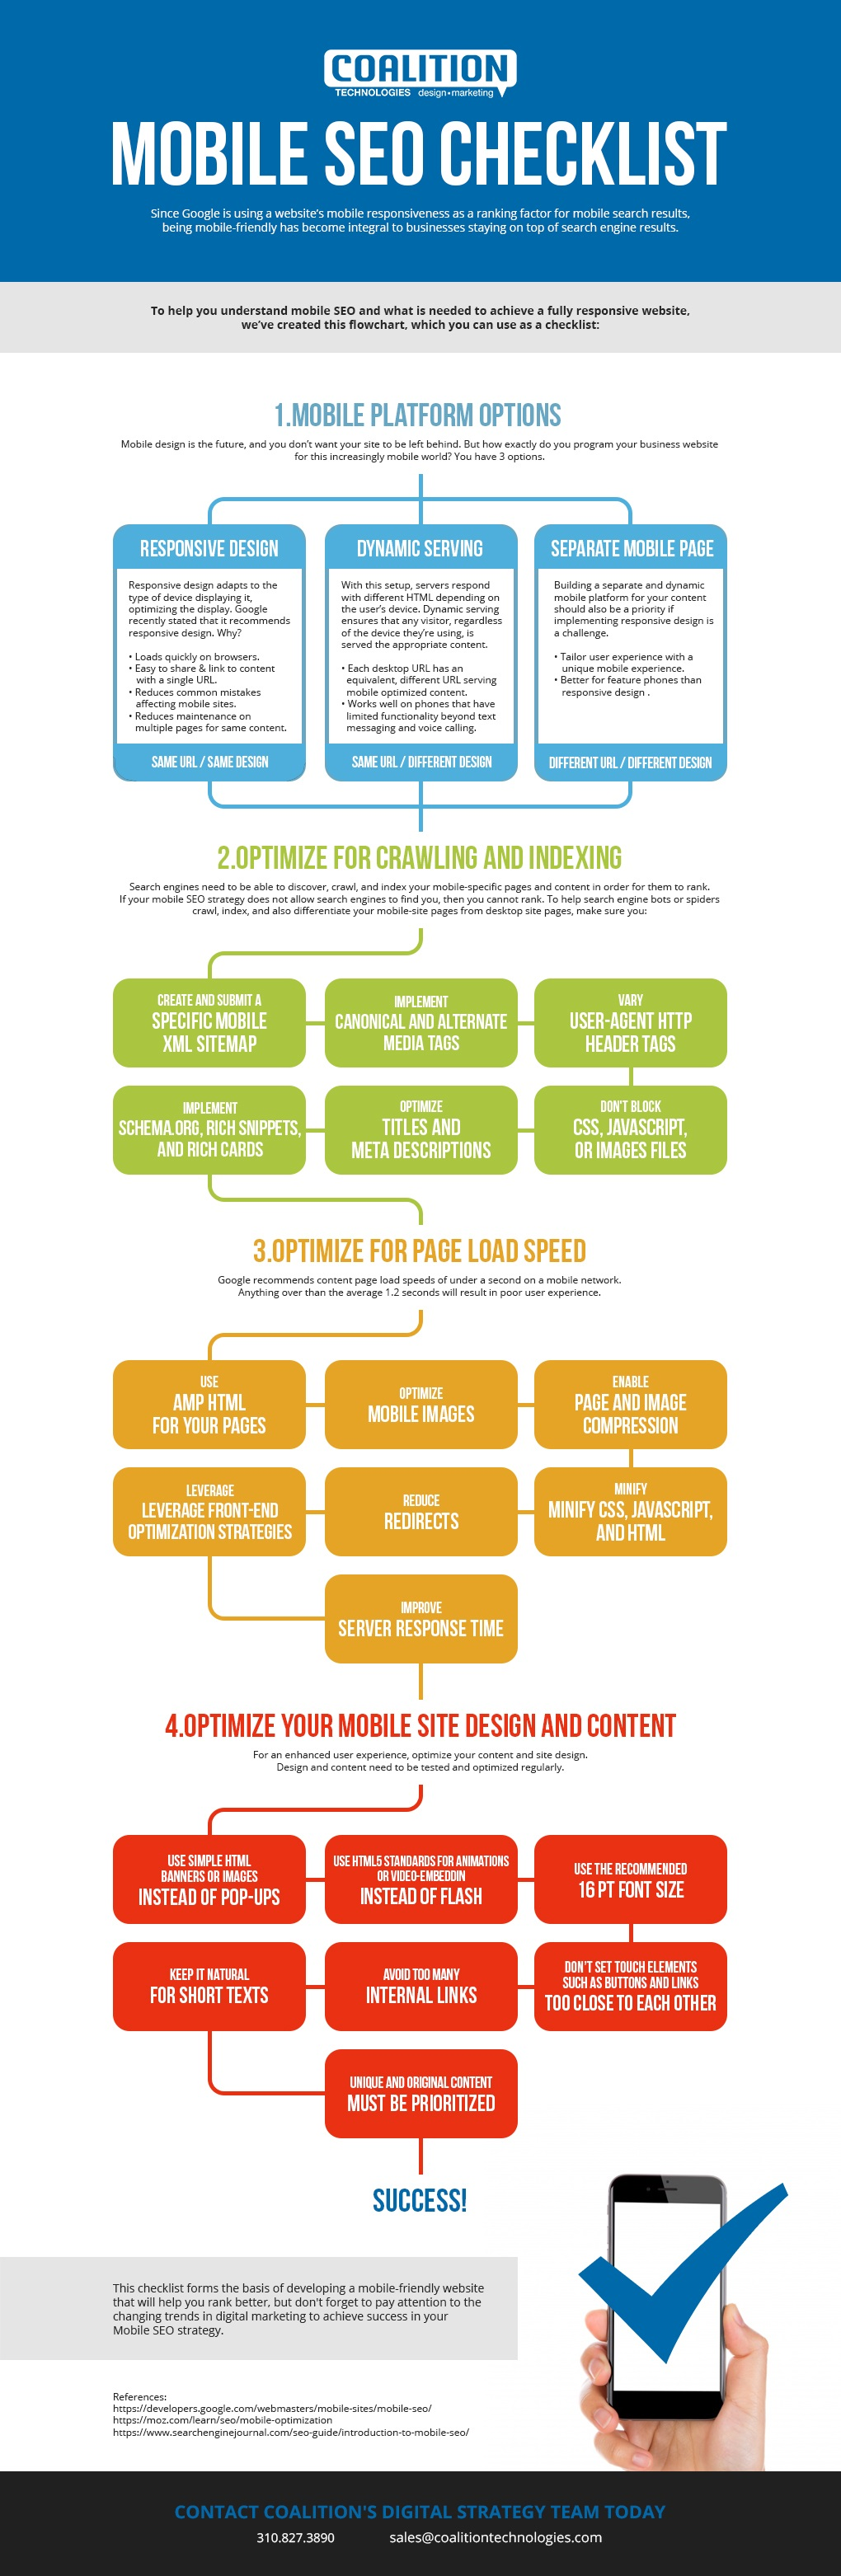 Infographic Image - Mobile SEO Checklist